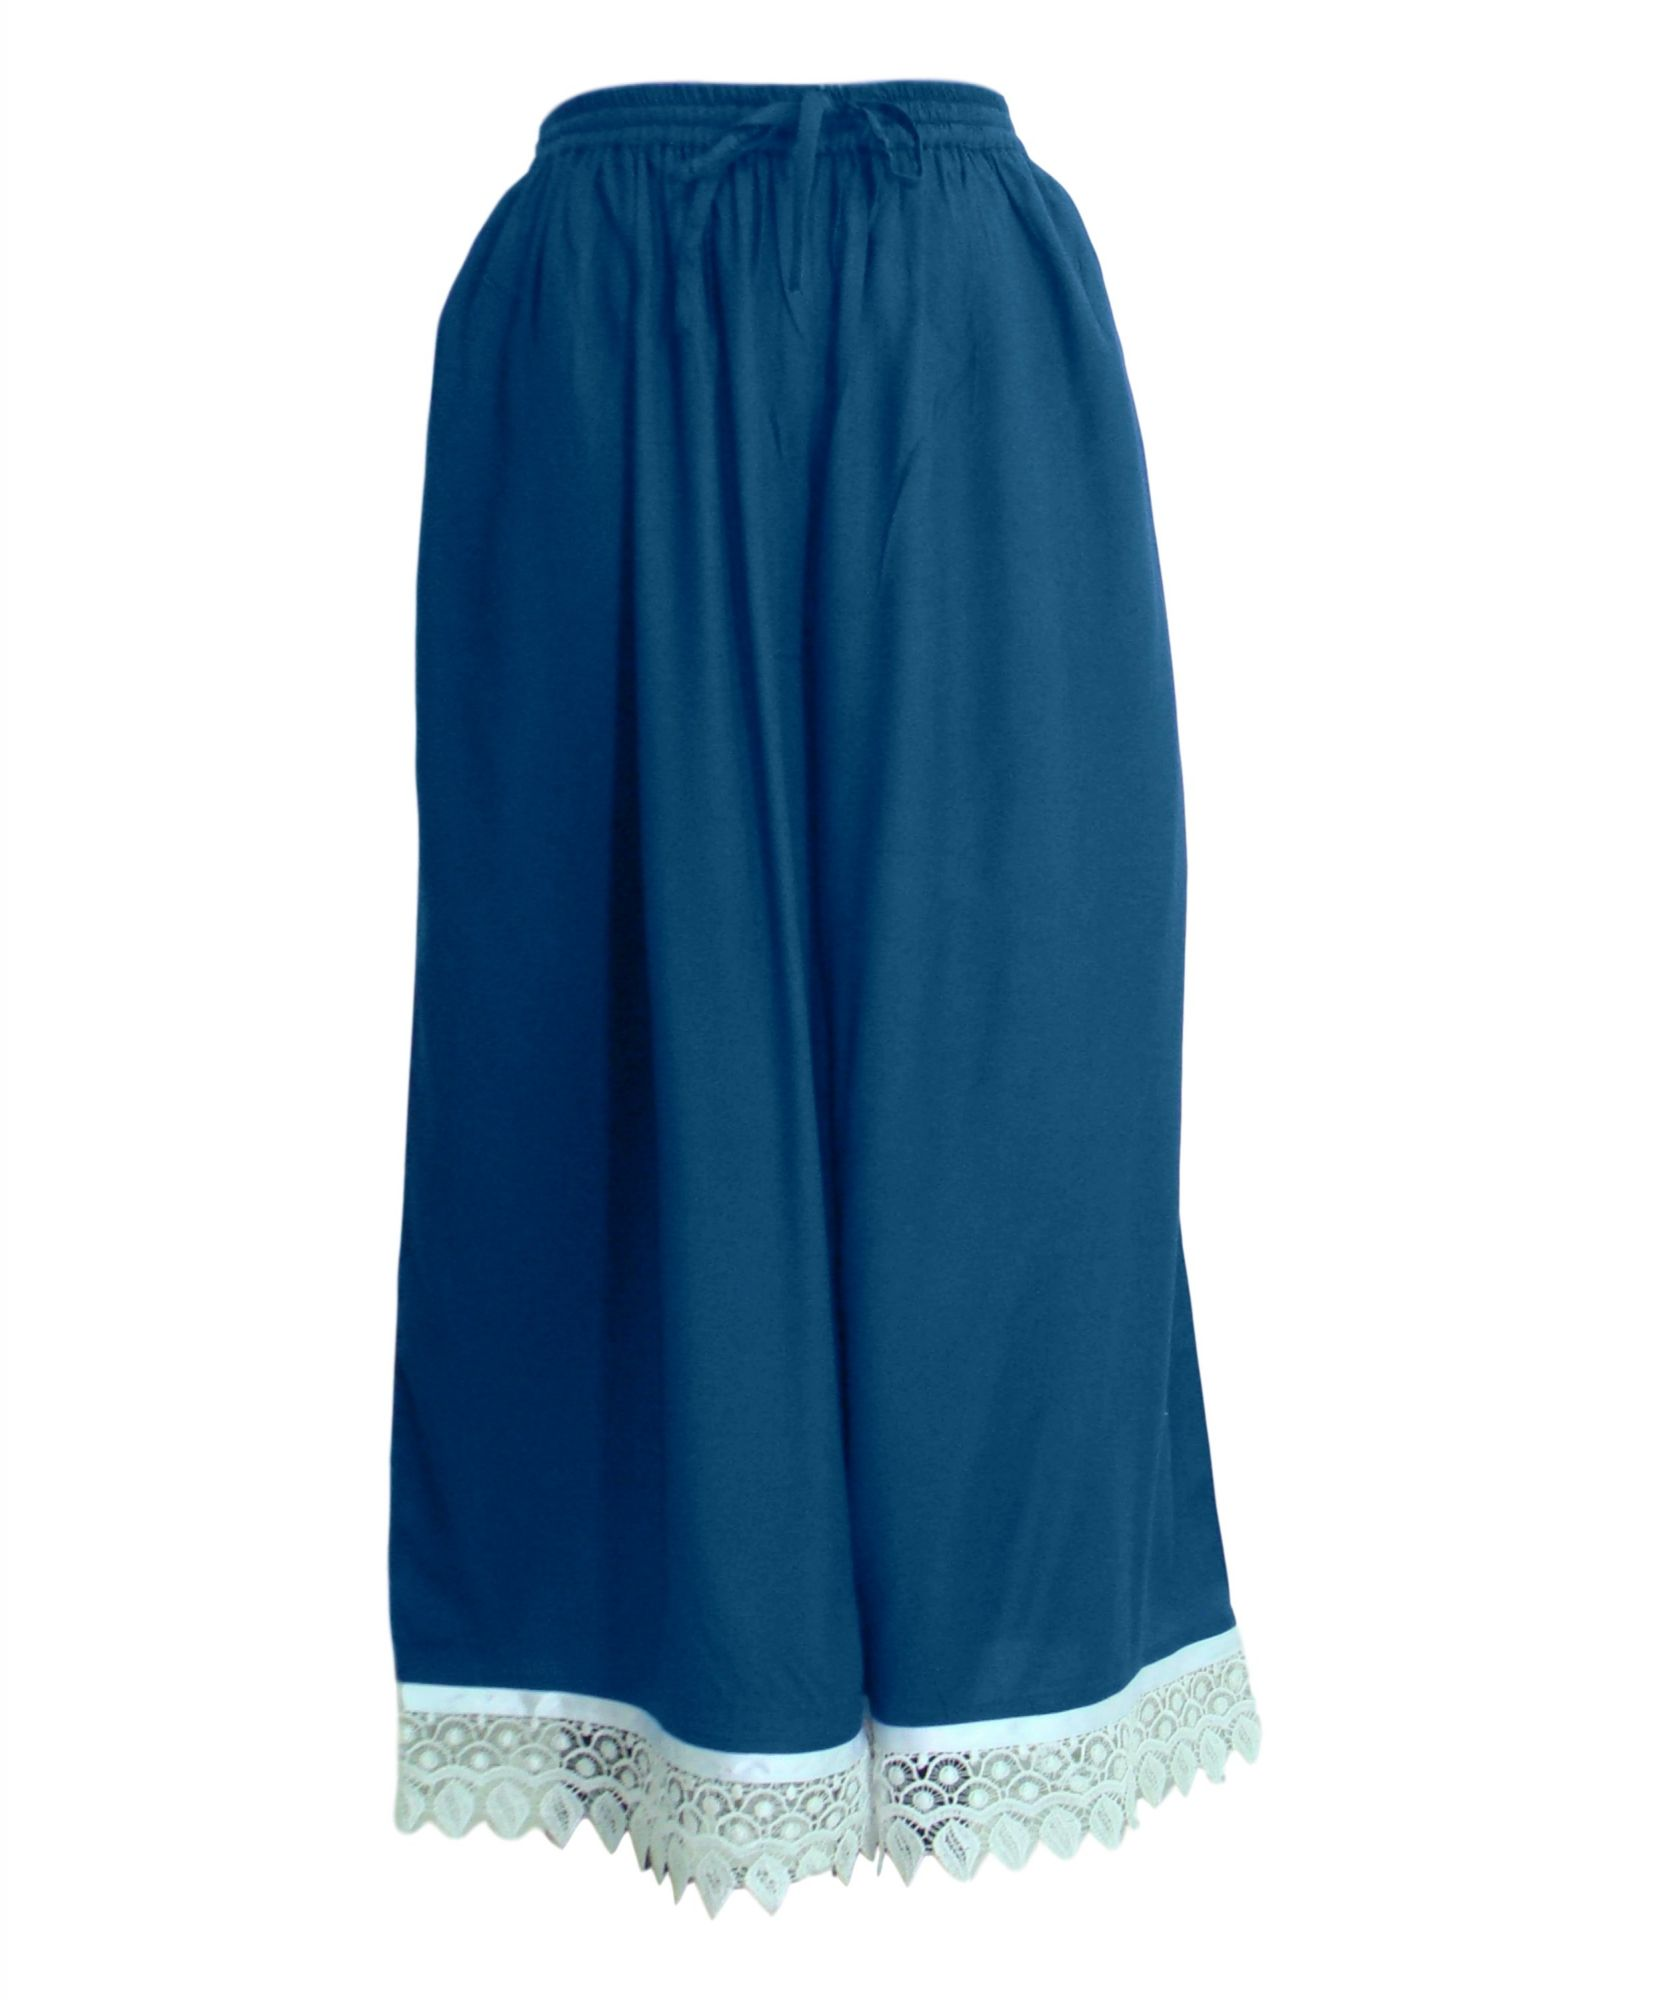 Embellished Regular Fit Palazzo Pant in Sky Blue